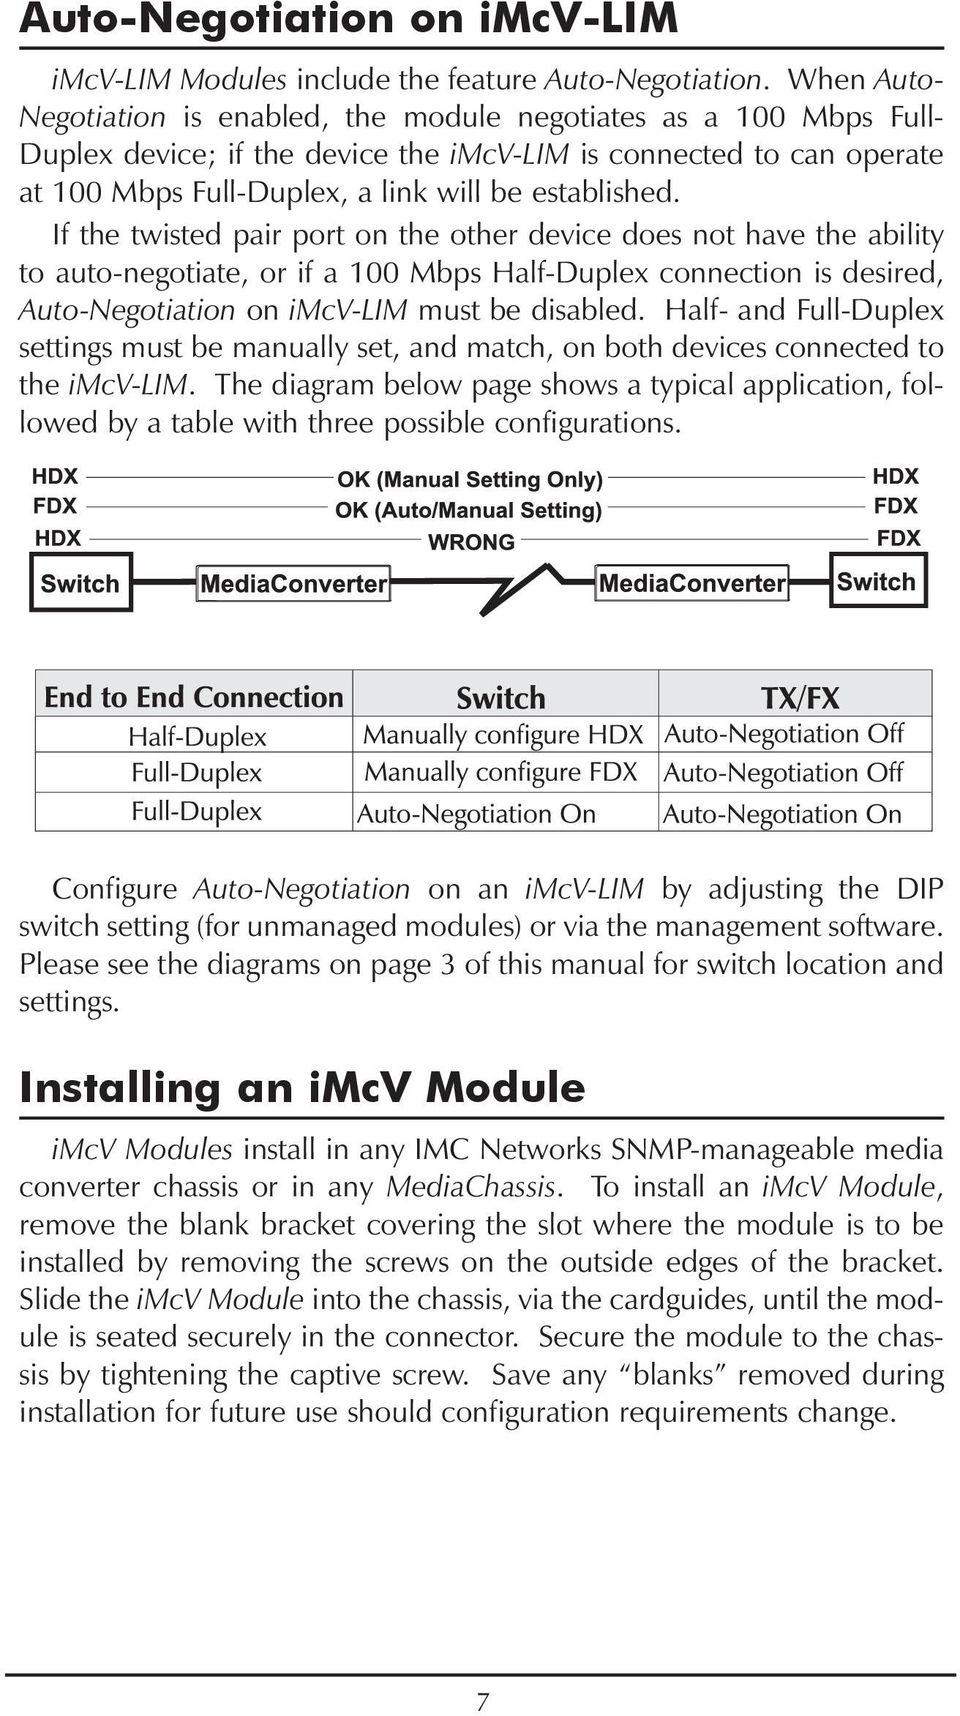 If the twisted pair port on the other device does not have the ability to auto-negotiate, or if a 100 Mbps Half-Duplex connection is desired, Auto-Negotiation on imcv-lim must be disabled.